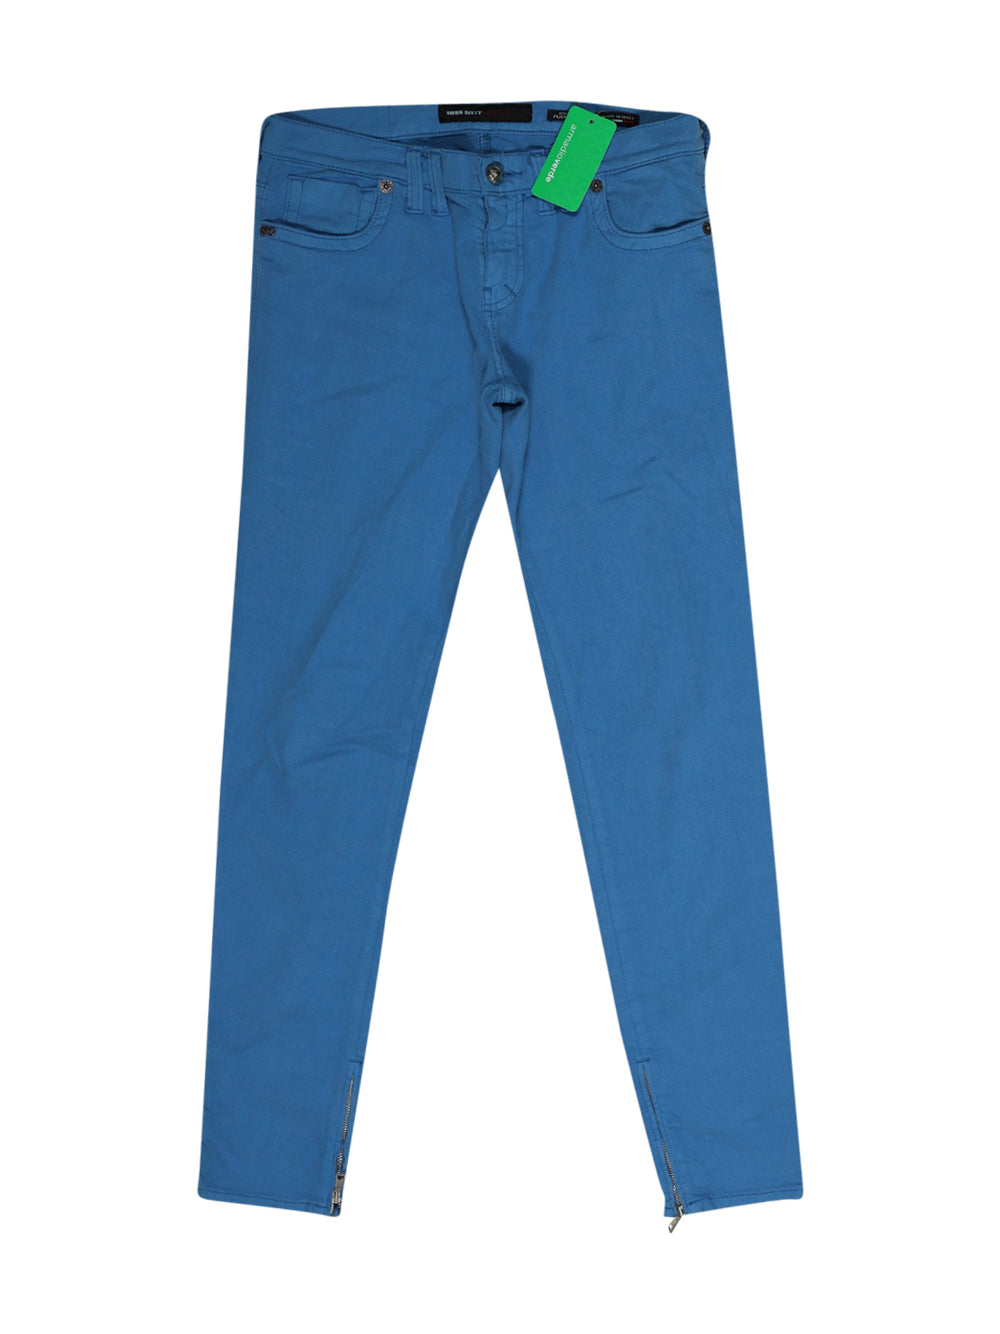 Front photo of Preloved Miss Sixty Light-blue Woman's trousers - size 12/L